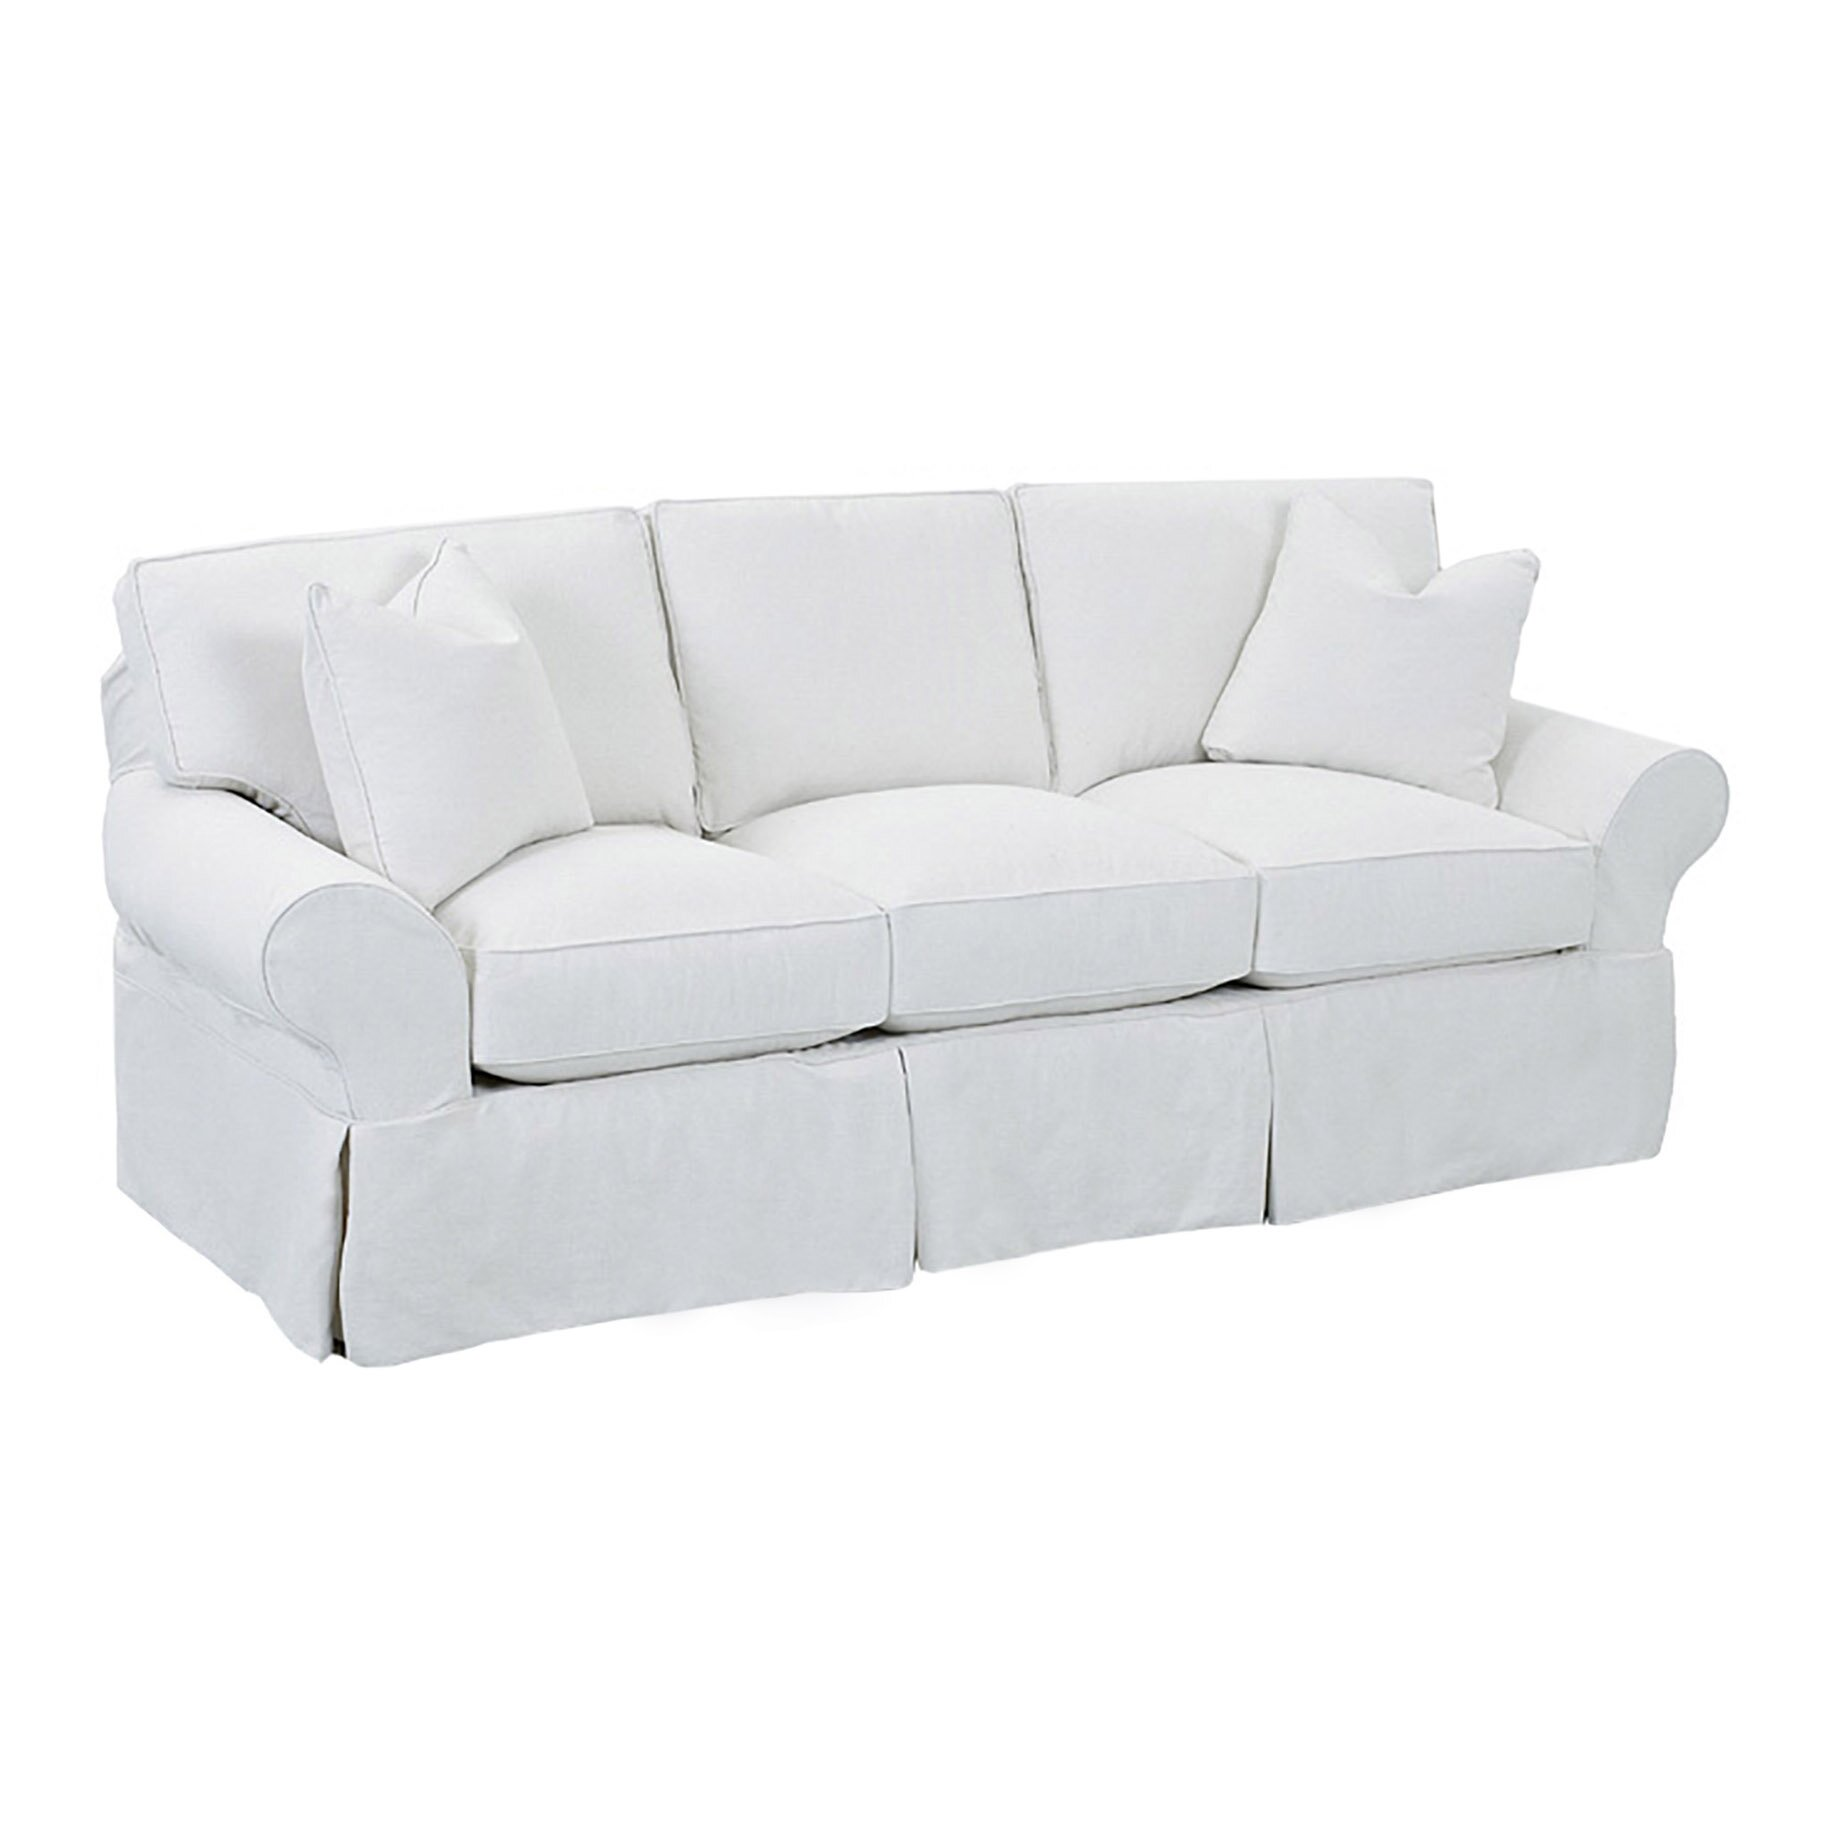 Wayfair Custom Upholstery Casey Sofa Reviews Wayfair